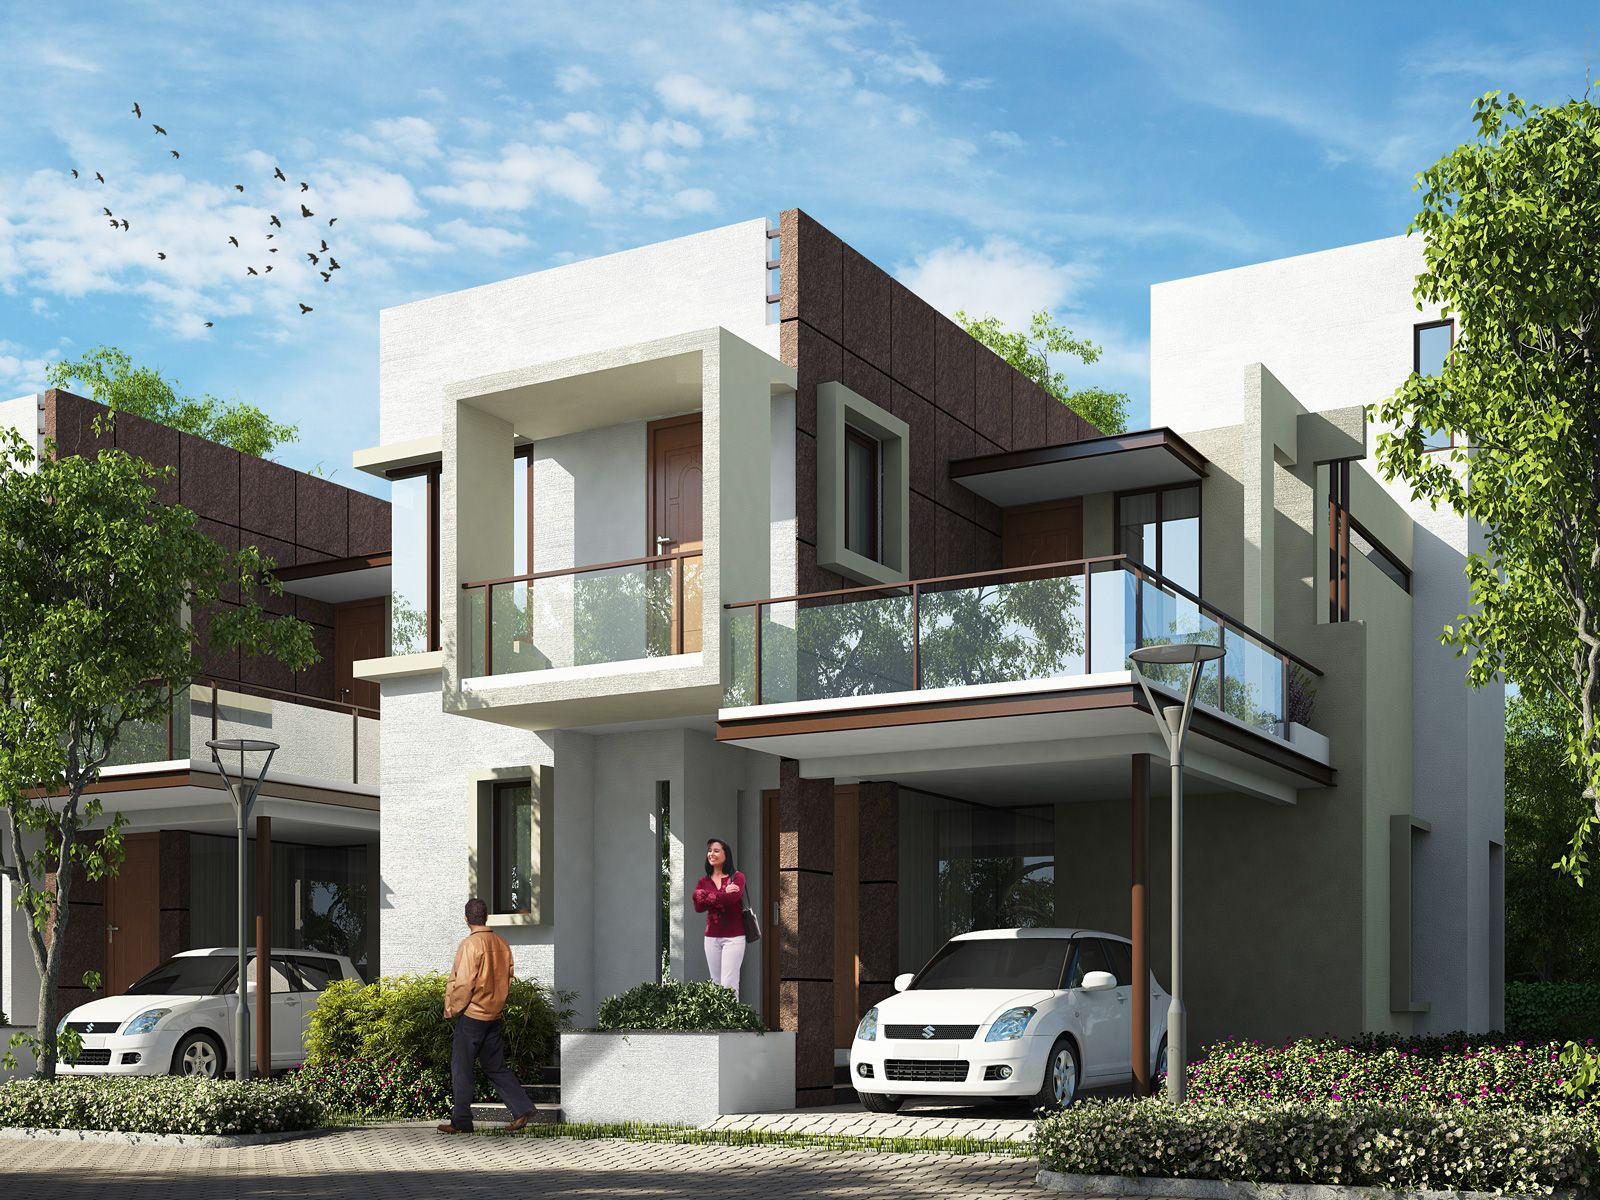 Charmant Contemporary Kerala Home Design Trendy Kerala Contemporary Home Design For  One Of Our Client From Kollam